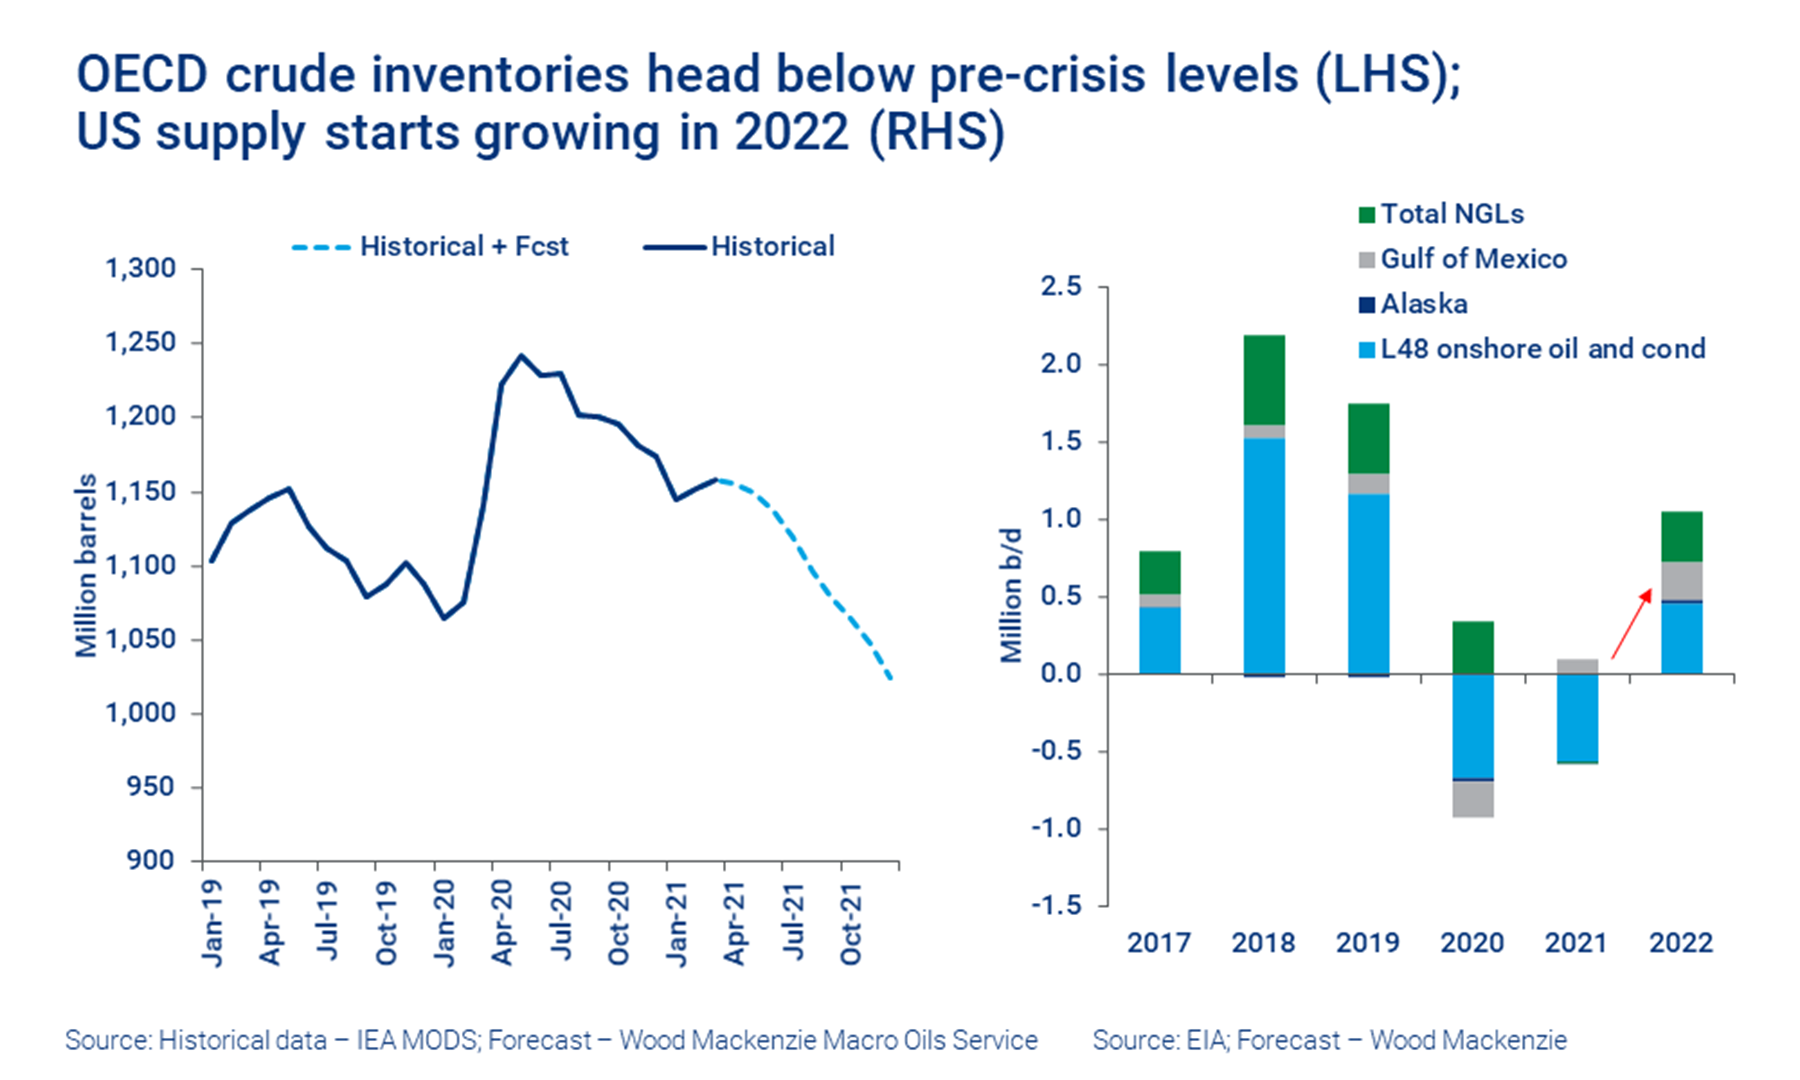 OECD crude inventories head below pre-crisis levels (LHS); US supply starts growing in 2022 (RHS)